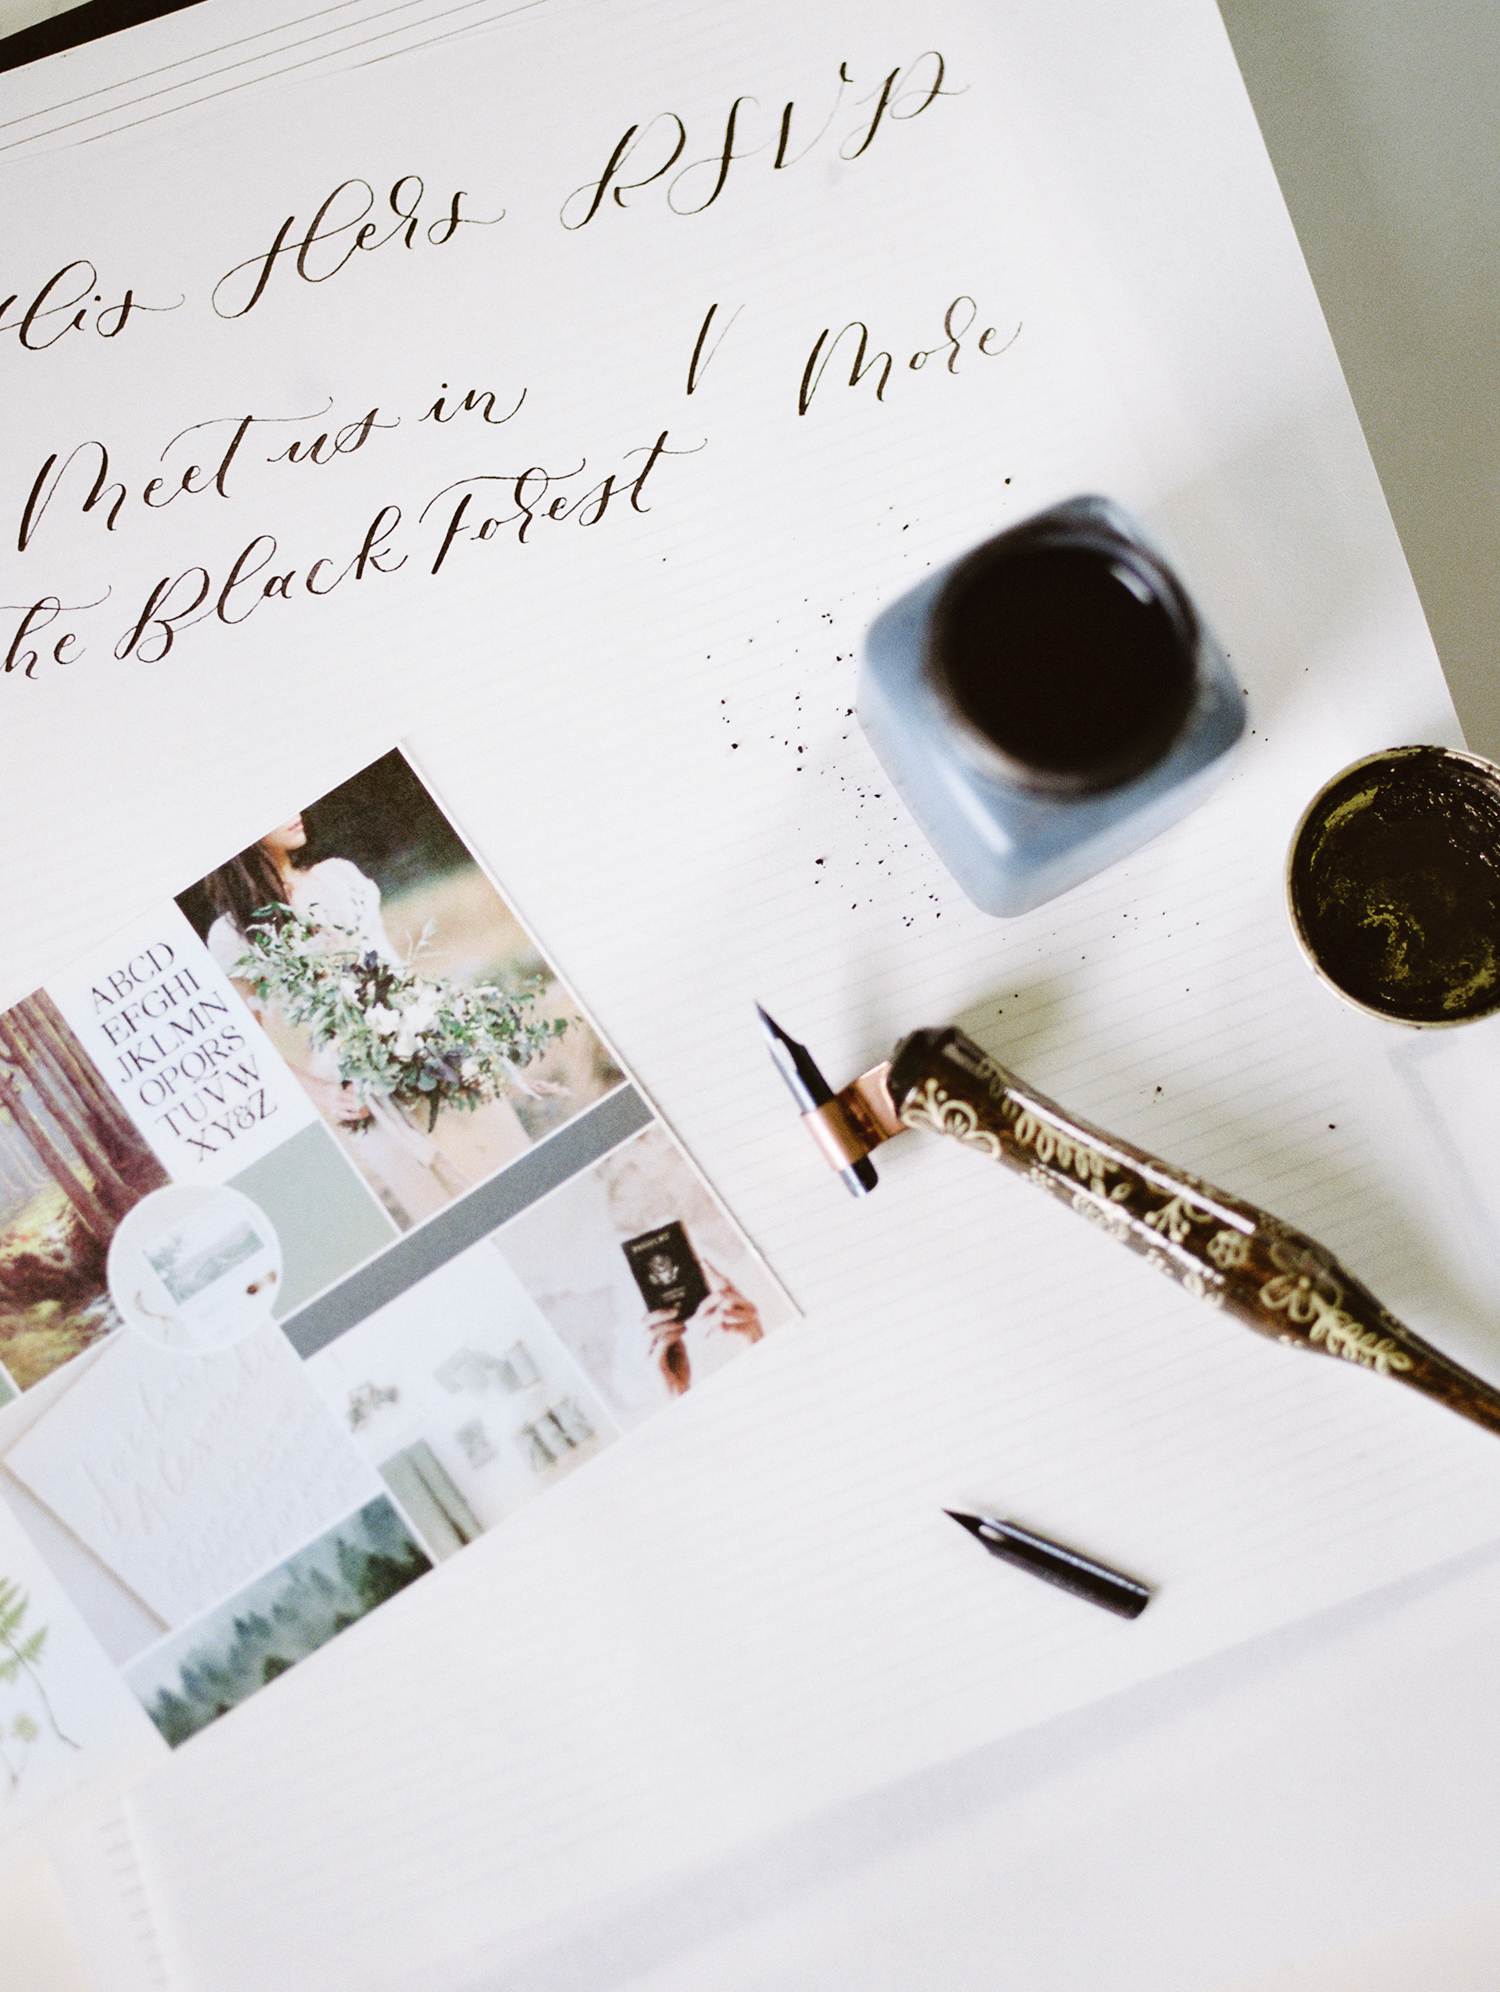 calligraphy ink and pen rest on a desk during a brand photo shoot in Detroit, Michigan